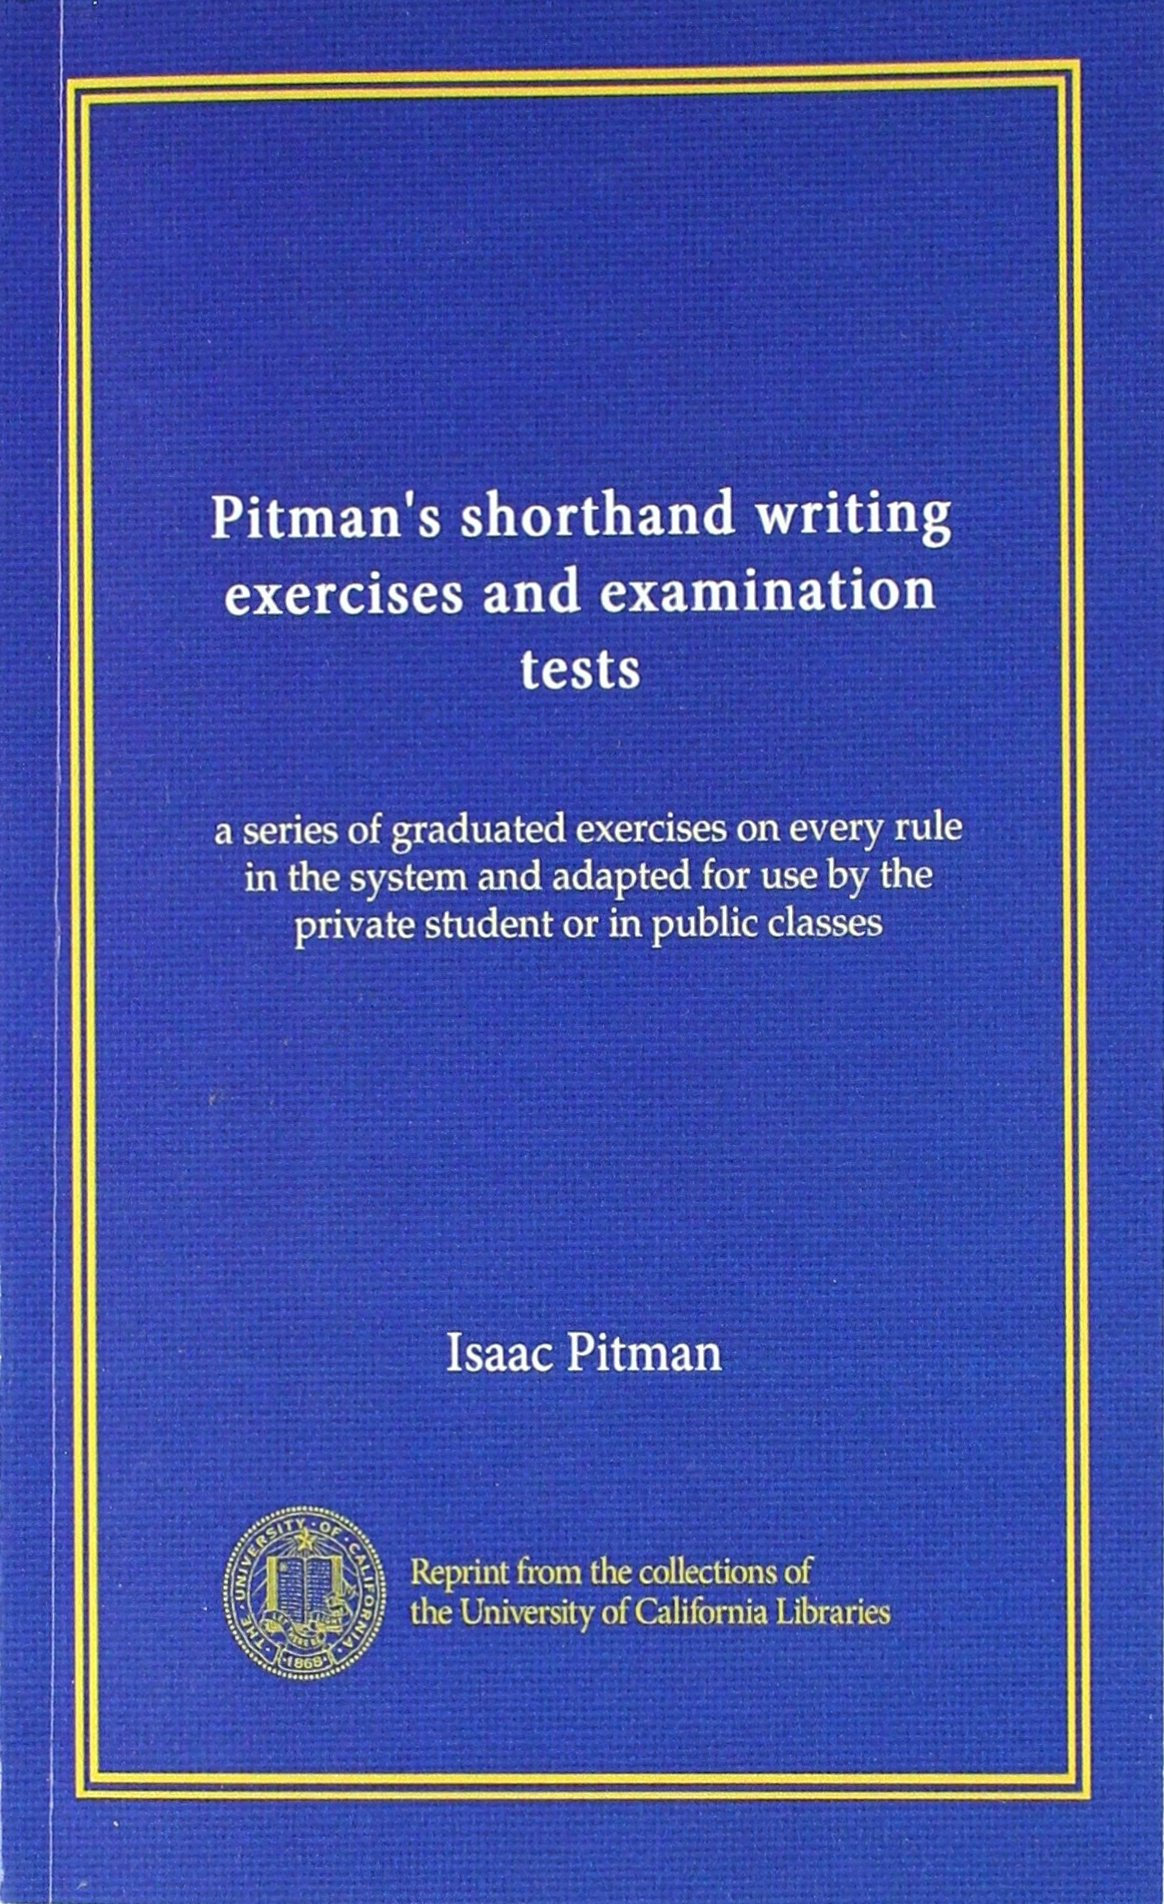 Pitman's shorthand writing exercises and examination tests: a series of graduated exercises on every rule in the system and adapted for use by the private student or in public classes